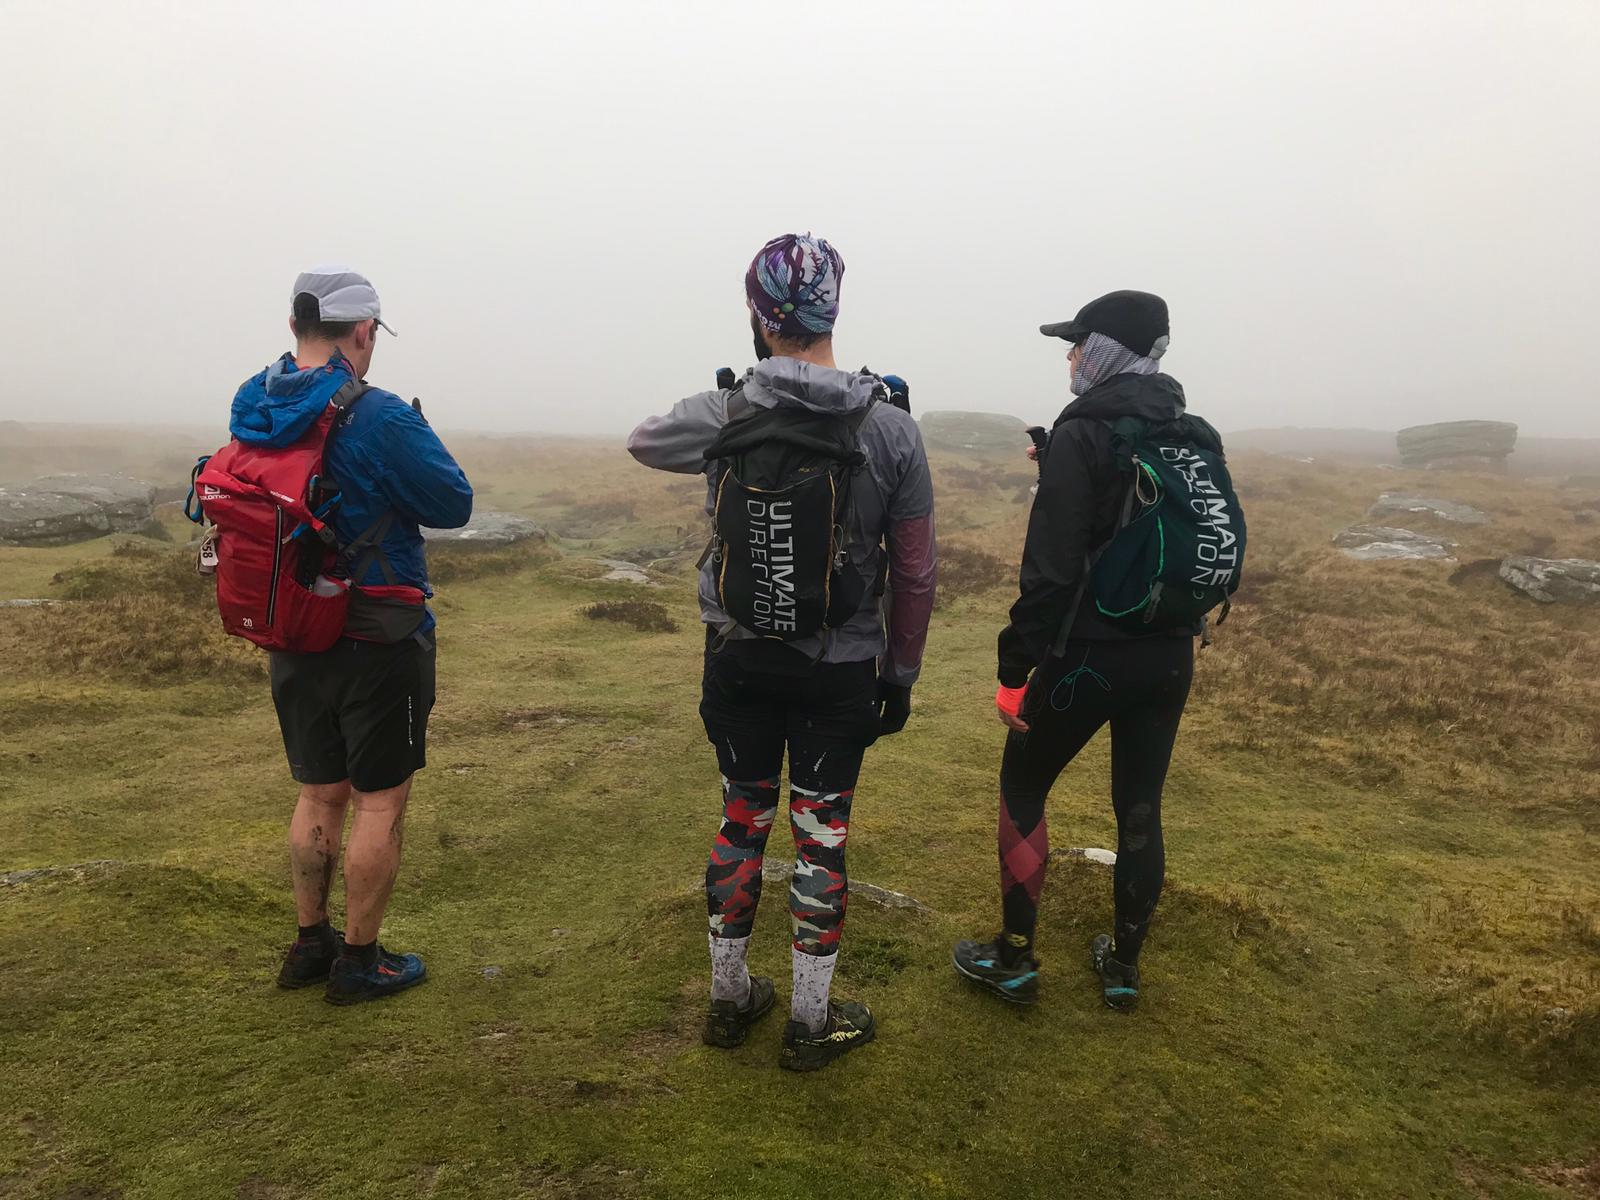 Dartmoor. Hostile, hilly and scary. And self navigation.